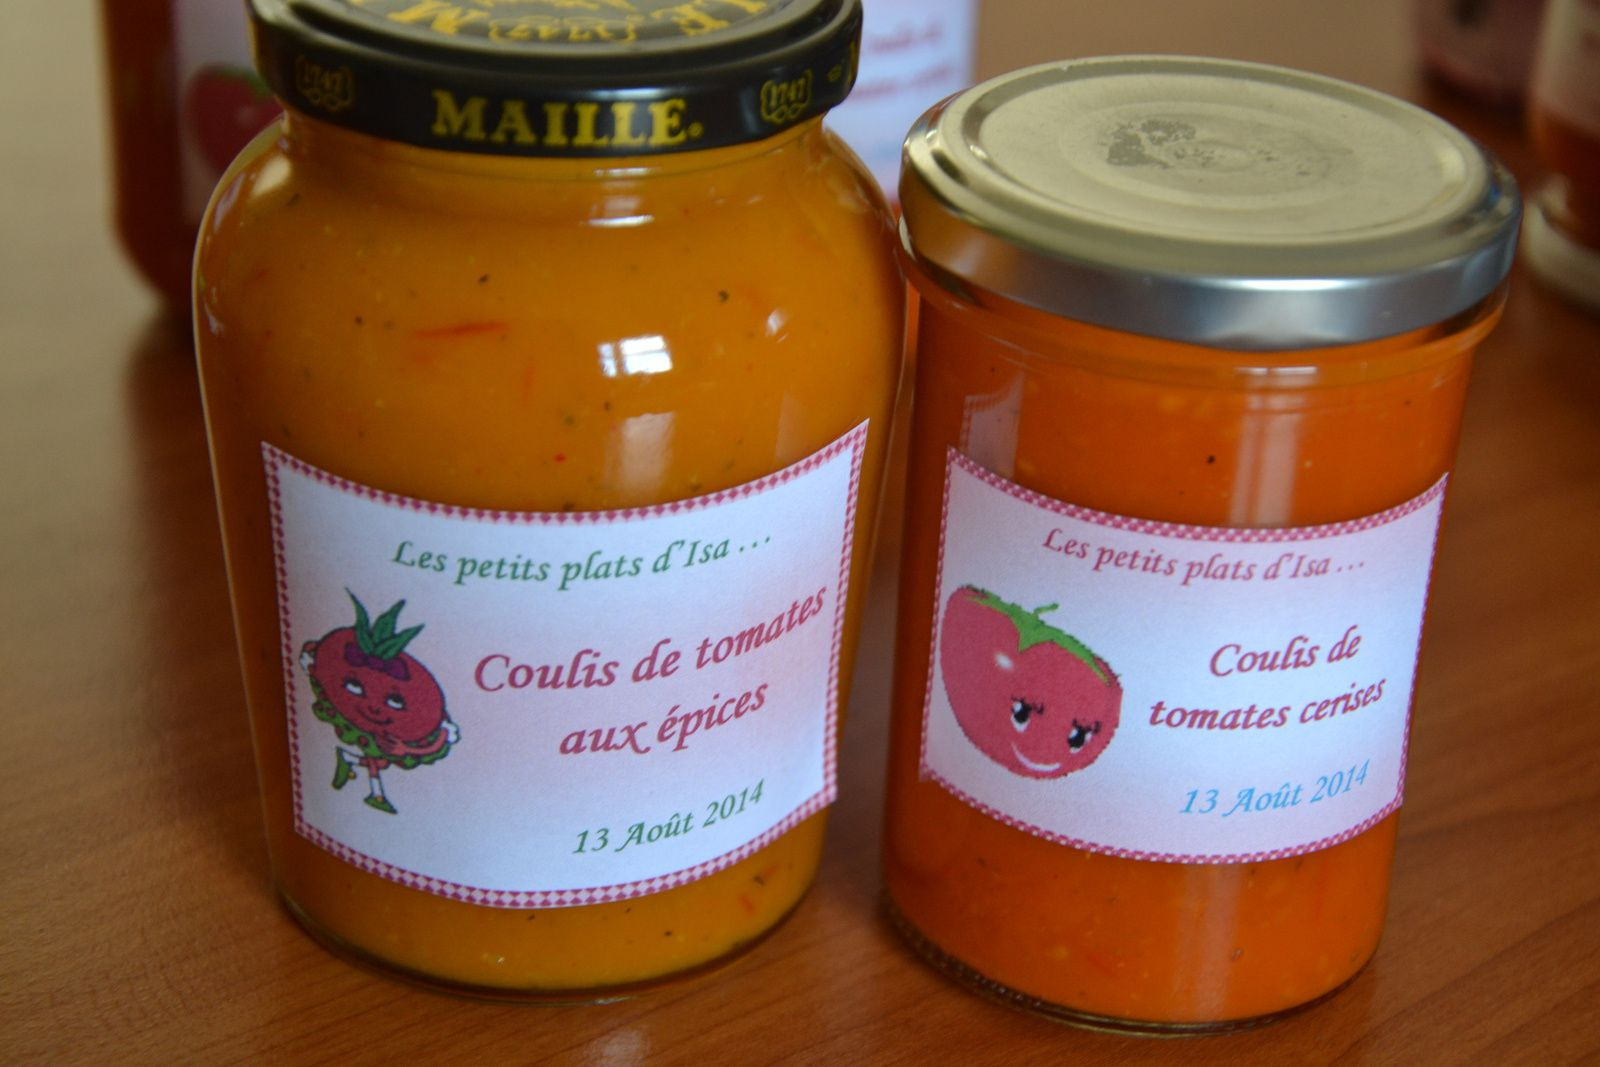 coulis de tomates au mycook thermomix cook 39 in le blog de nanatiti. Black Bedroom Furniture Sets. Home Design Ideas